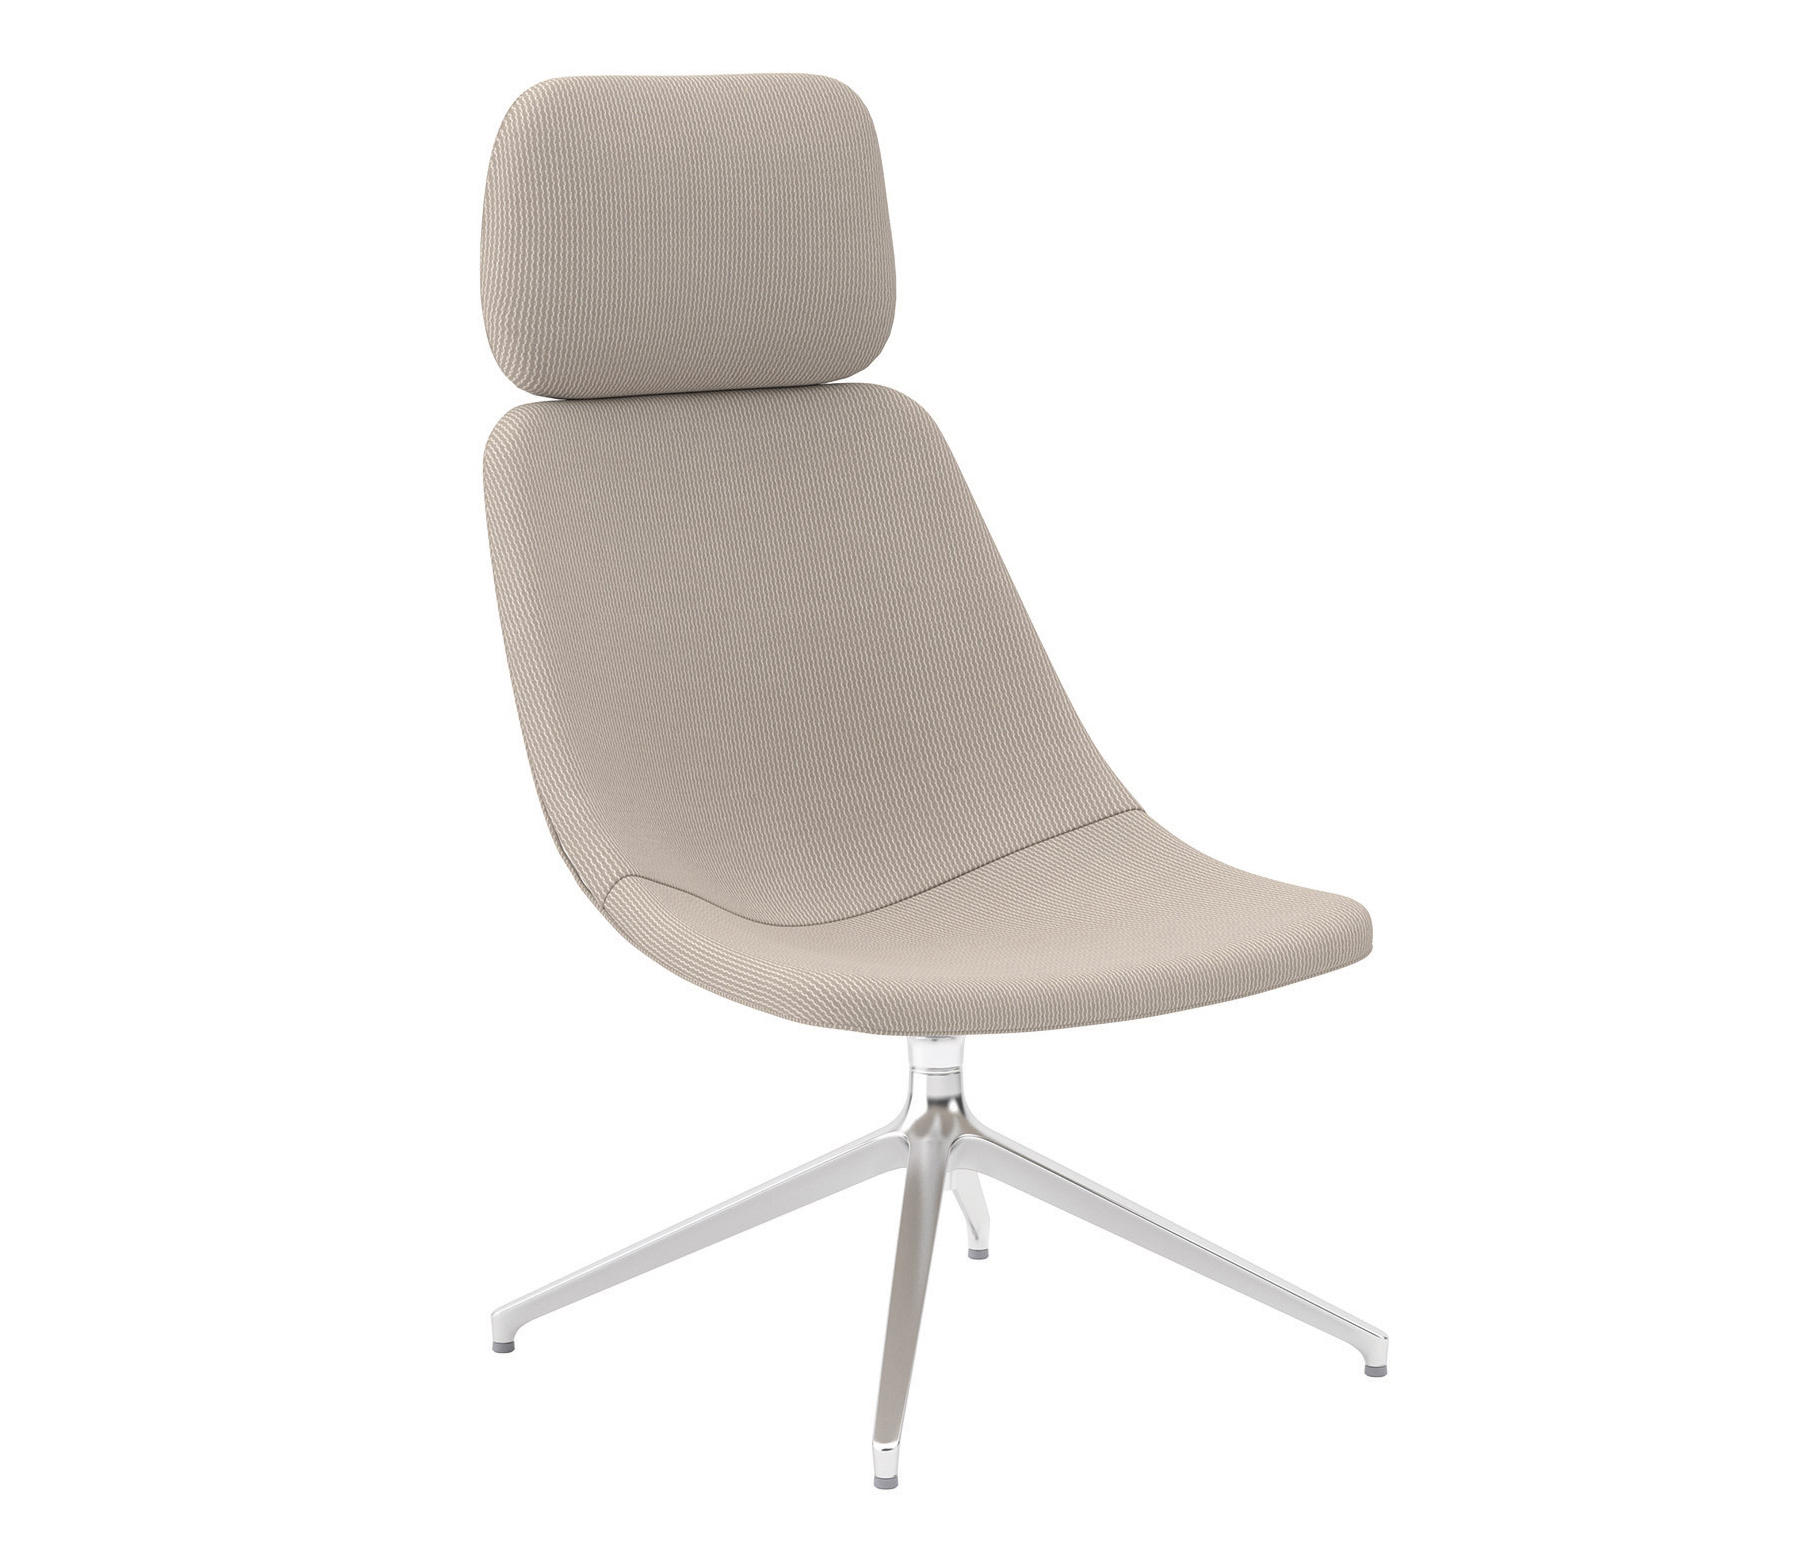 Mabel Seating Sessel Von National Office Furniture Architonic